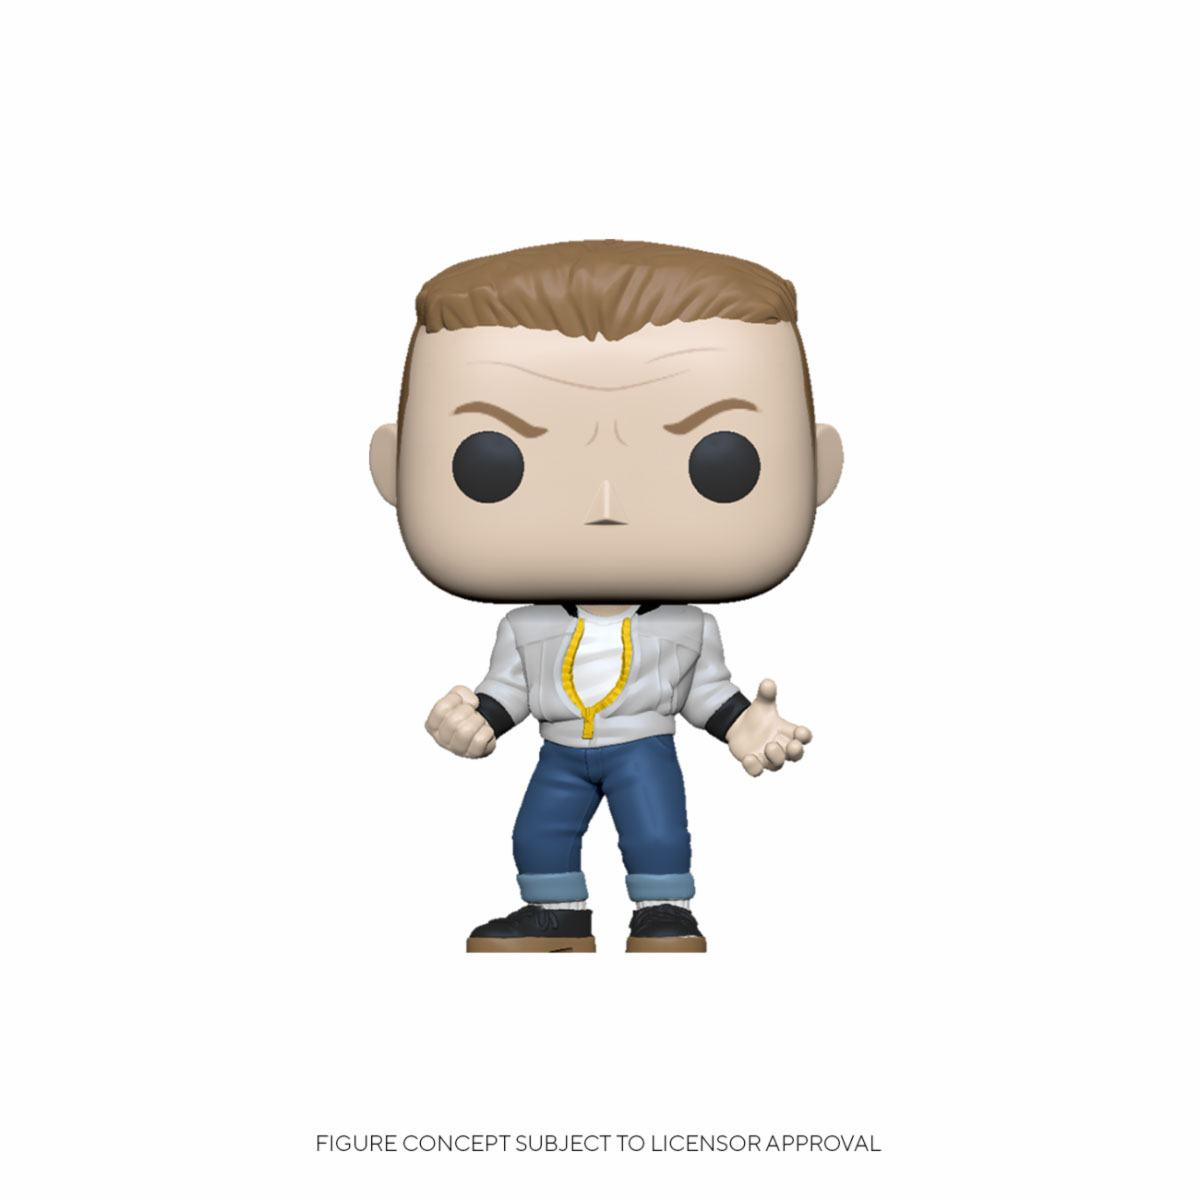 POP! MOVIES #??? PVC BACK TO THE FUTURE BIFF TANNEN